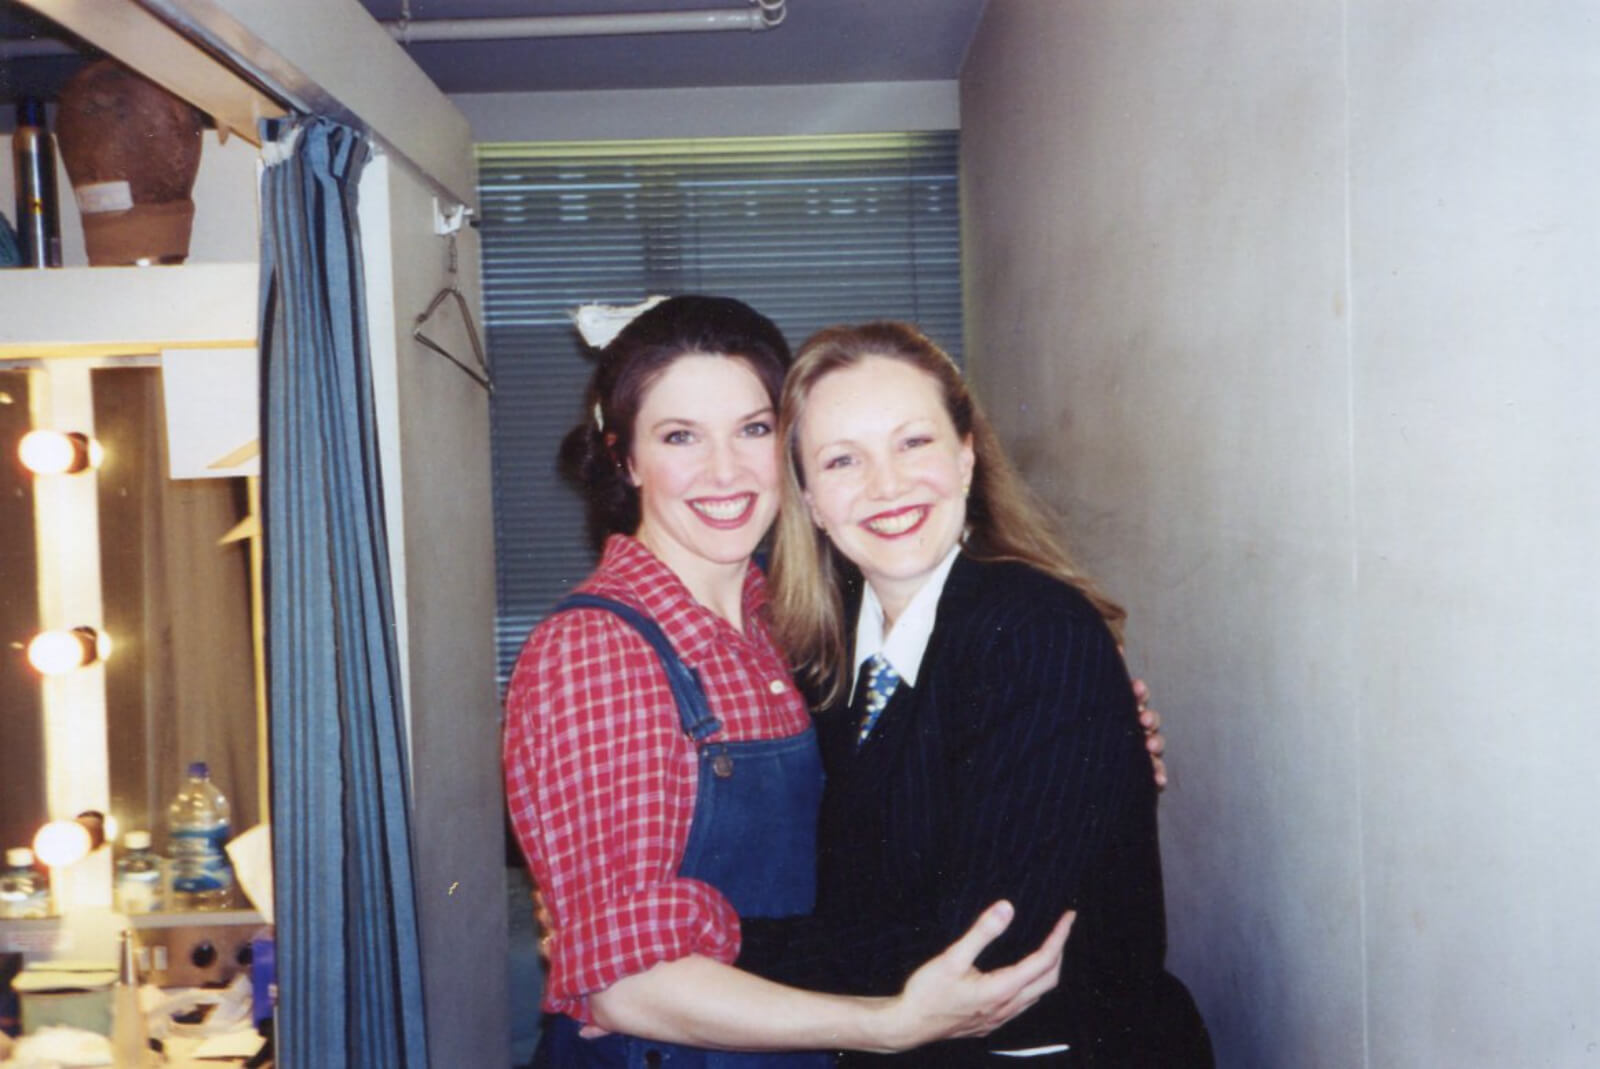 Susan Stroman in her all-black outfit with white collar, and Laurey Williams (Josefina Gabrielle) in the dressing/powder room backstage, smiling for the camera.